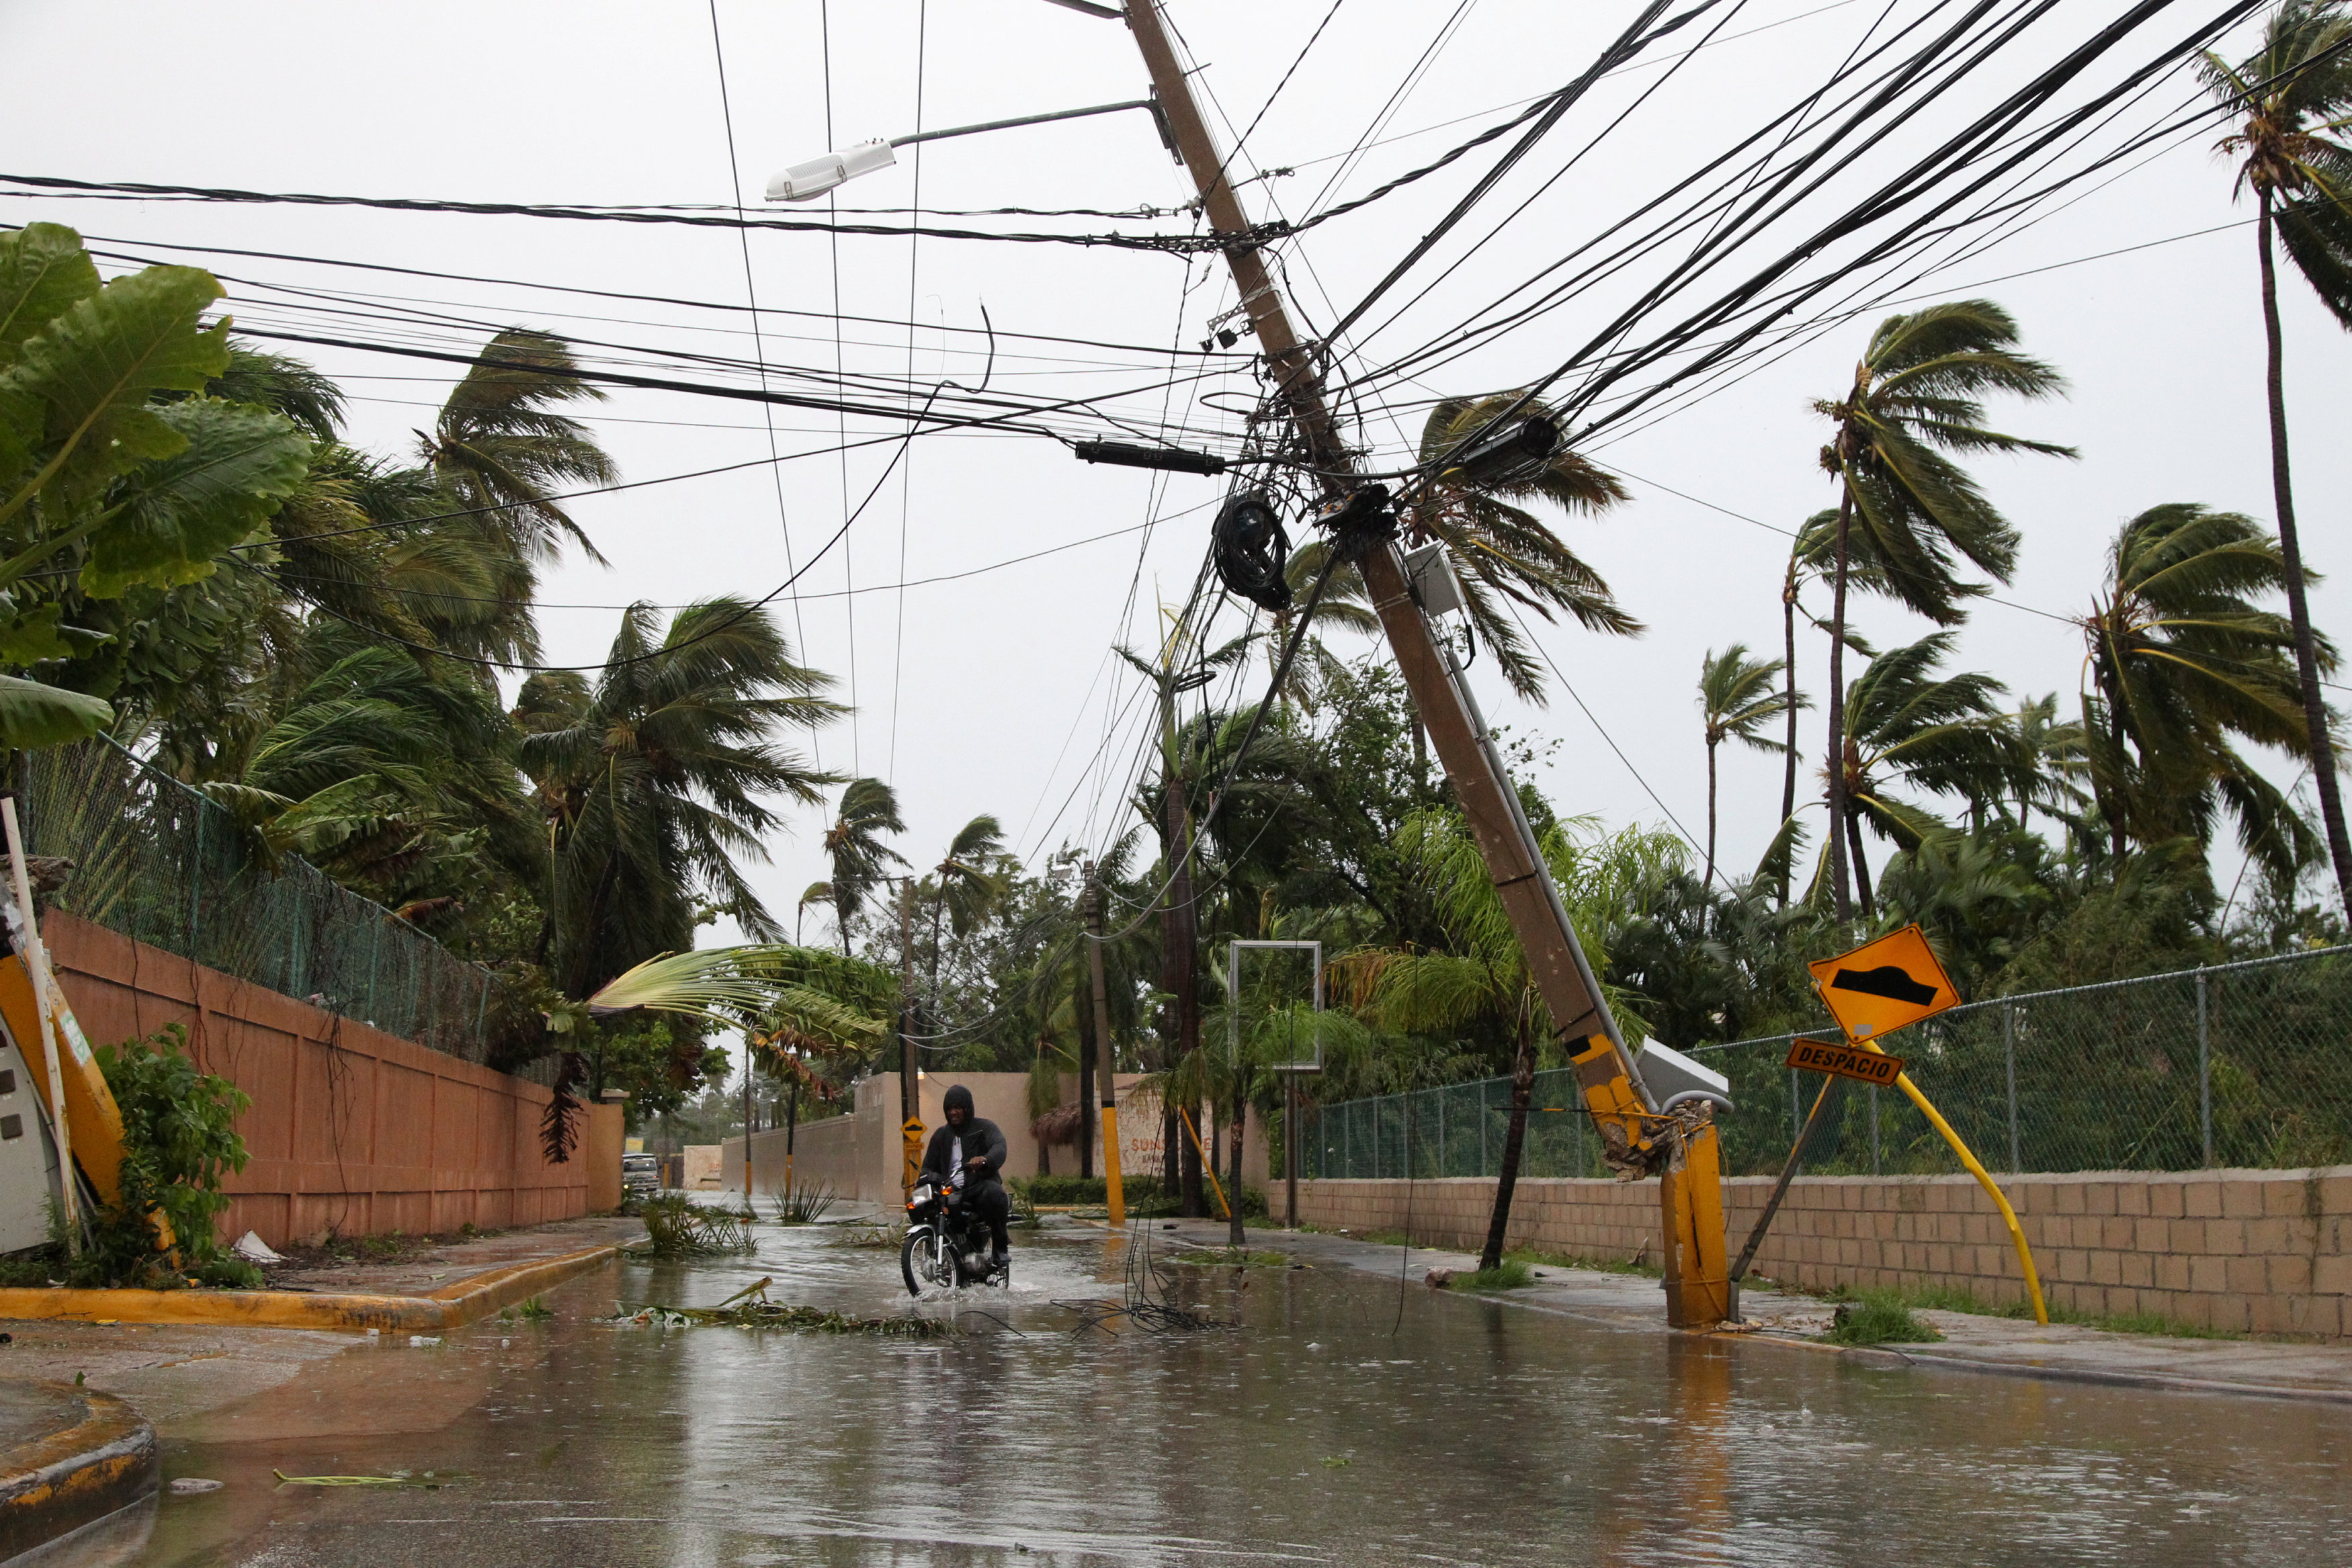 A man rides a motorbike on a flooded street in Punta Cana, Dominican Republic on Sept. 21, 2017. (REUTERS/Ricardo Rojas)